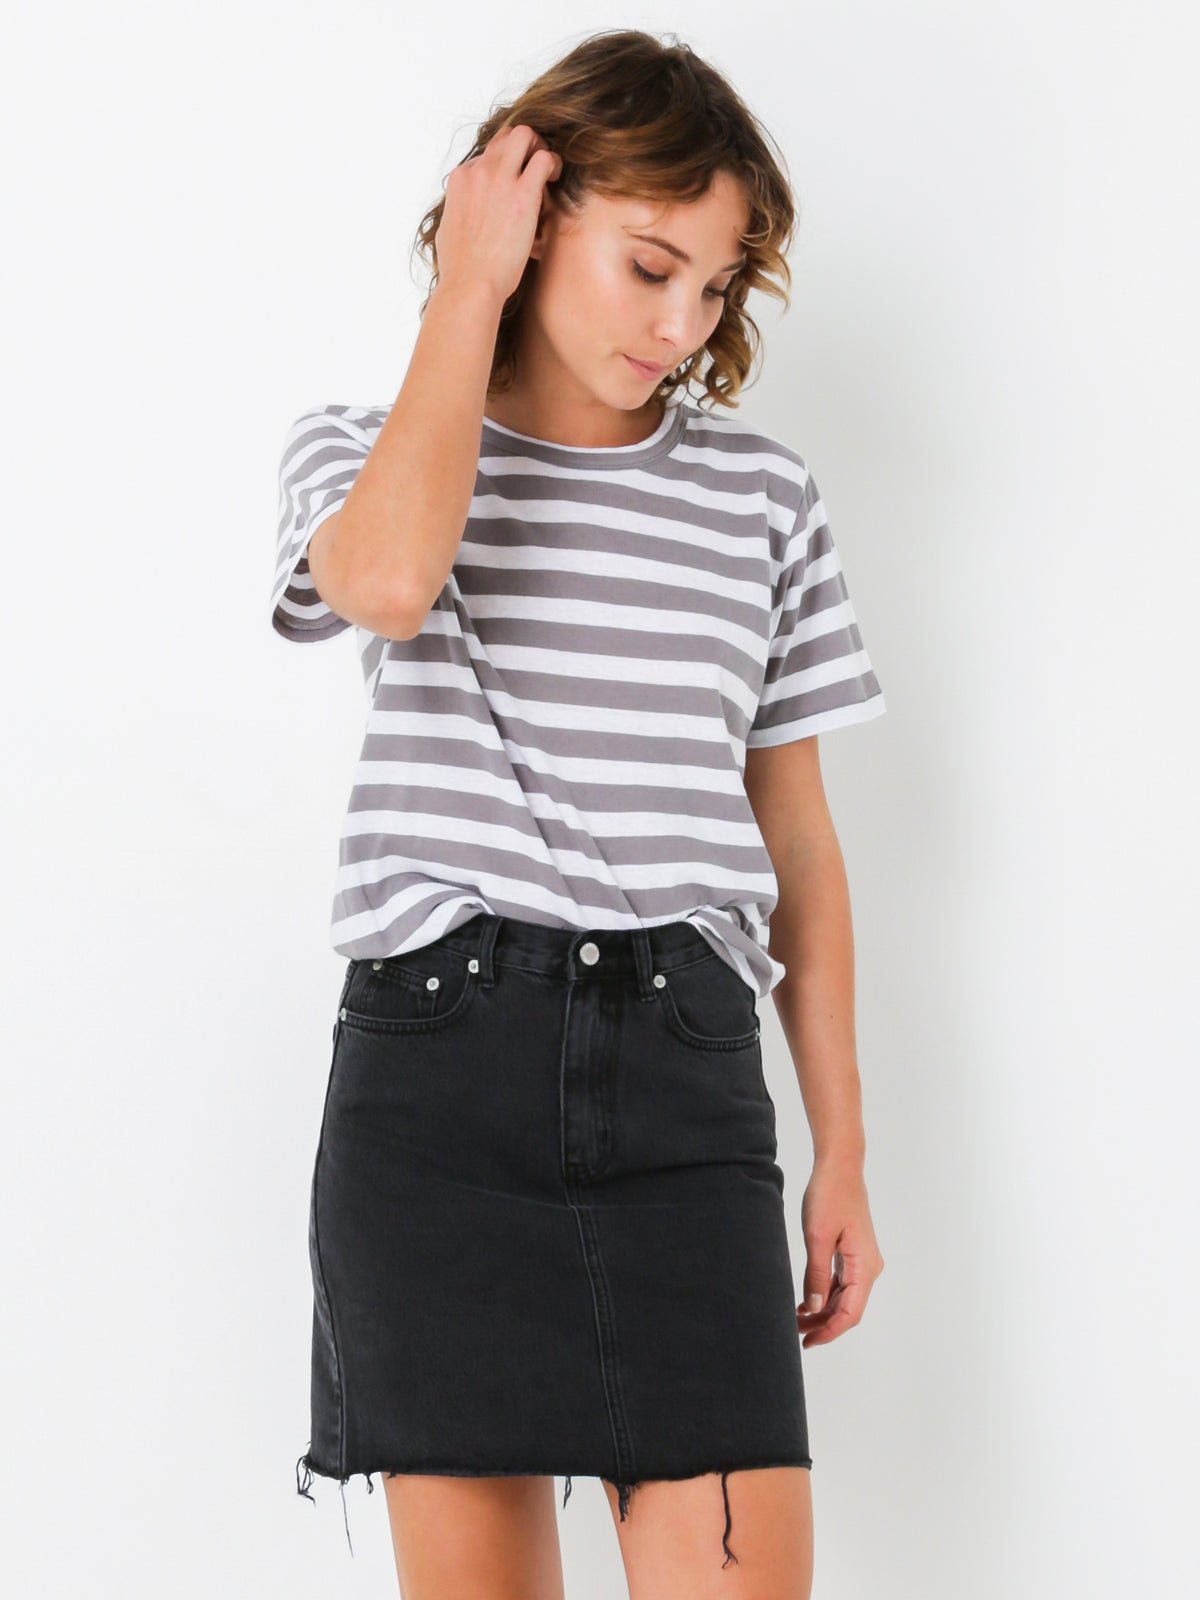 Everyday T-Shirt in Steel & White Stripe